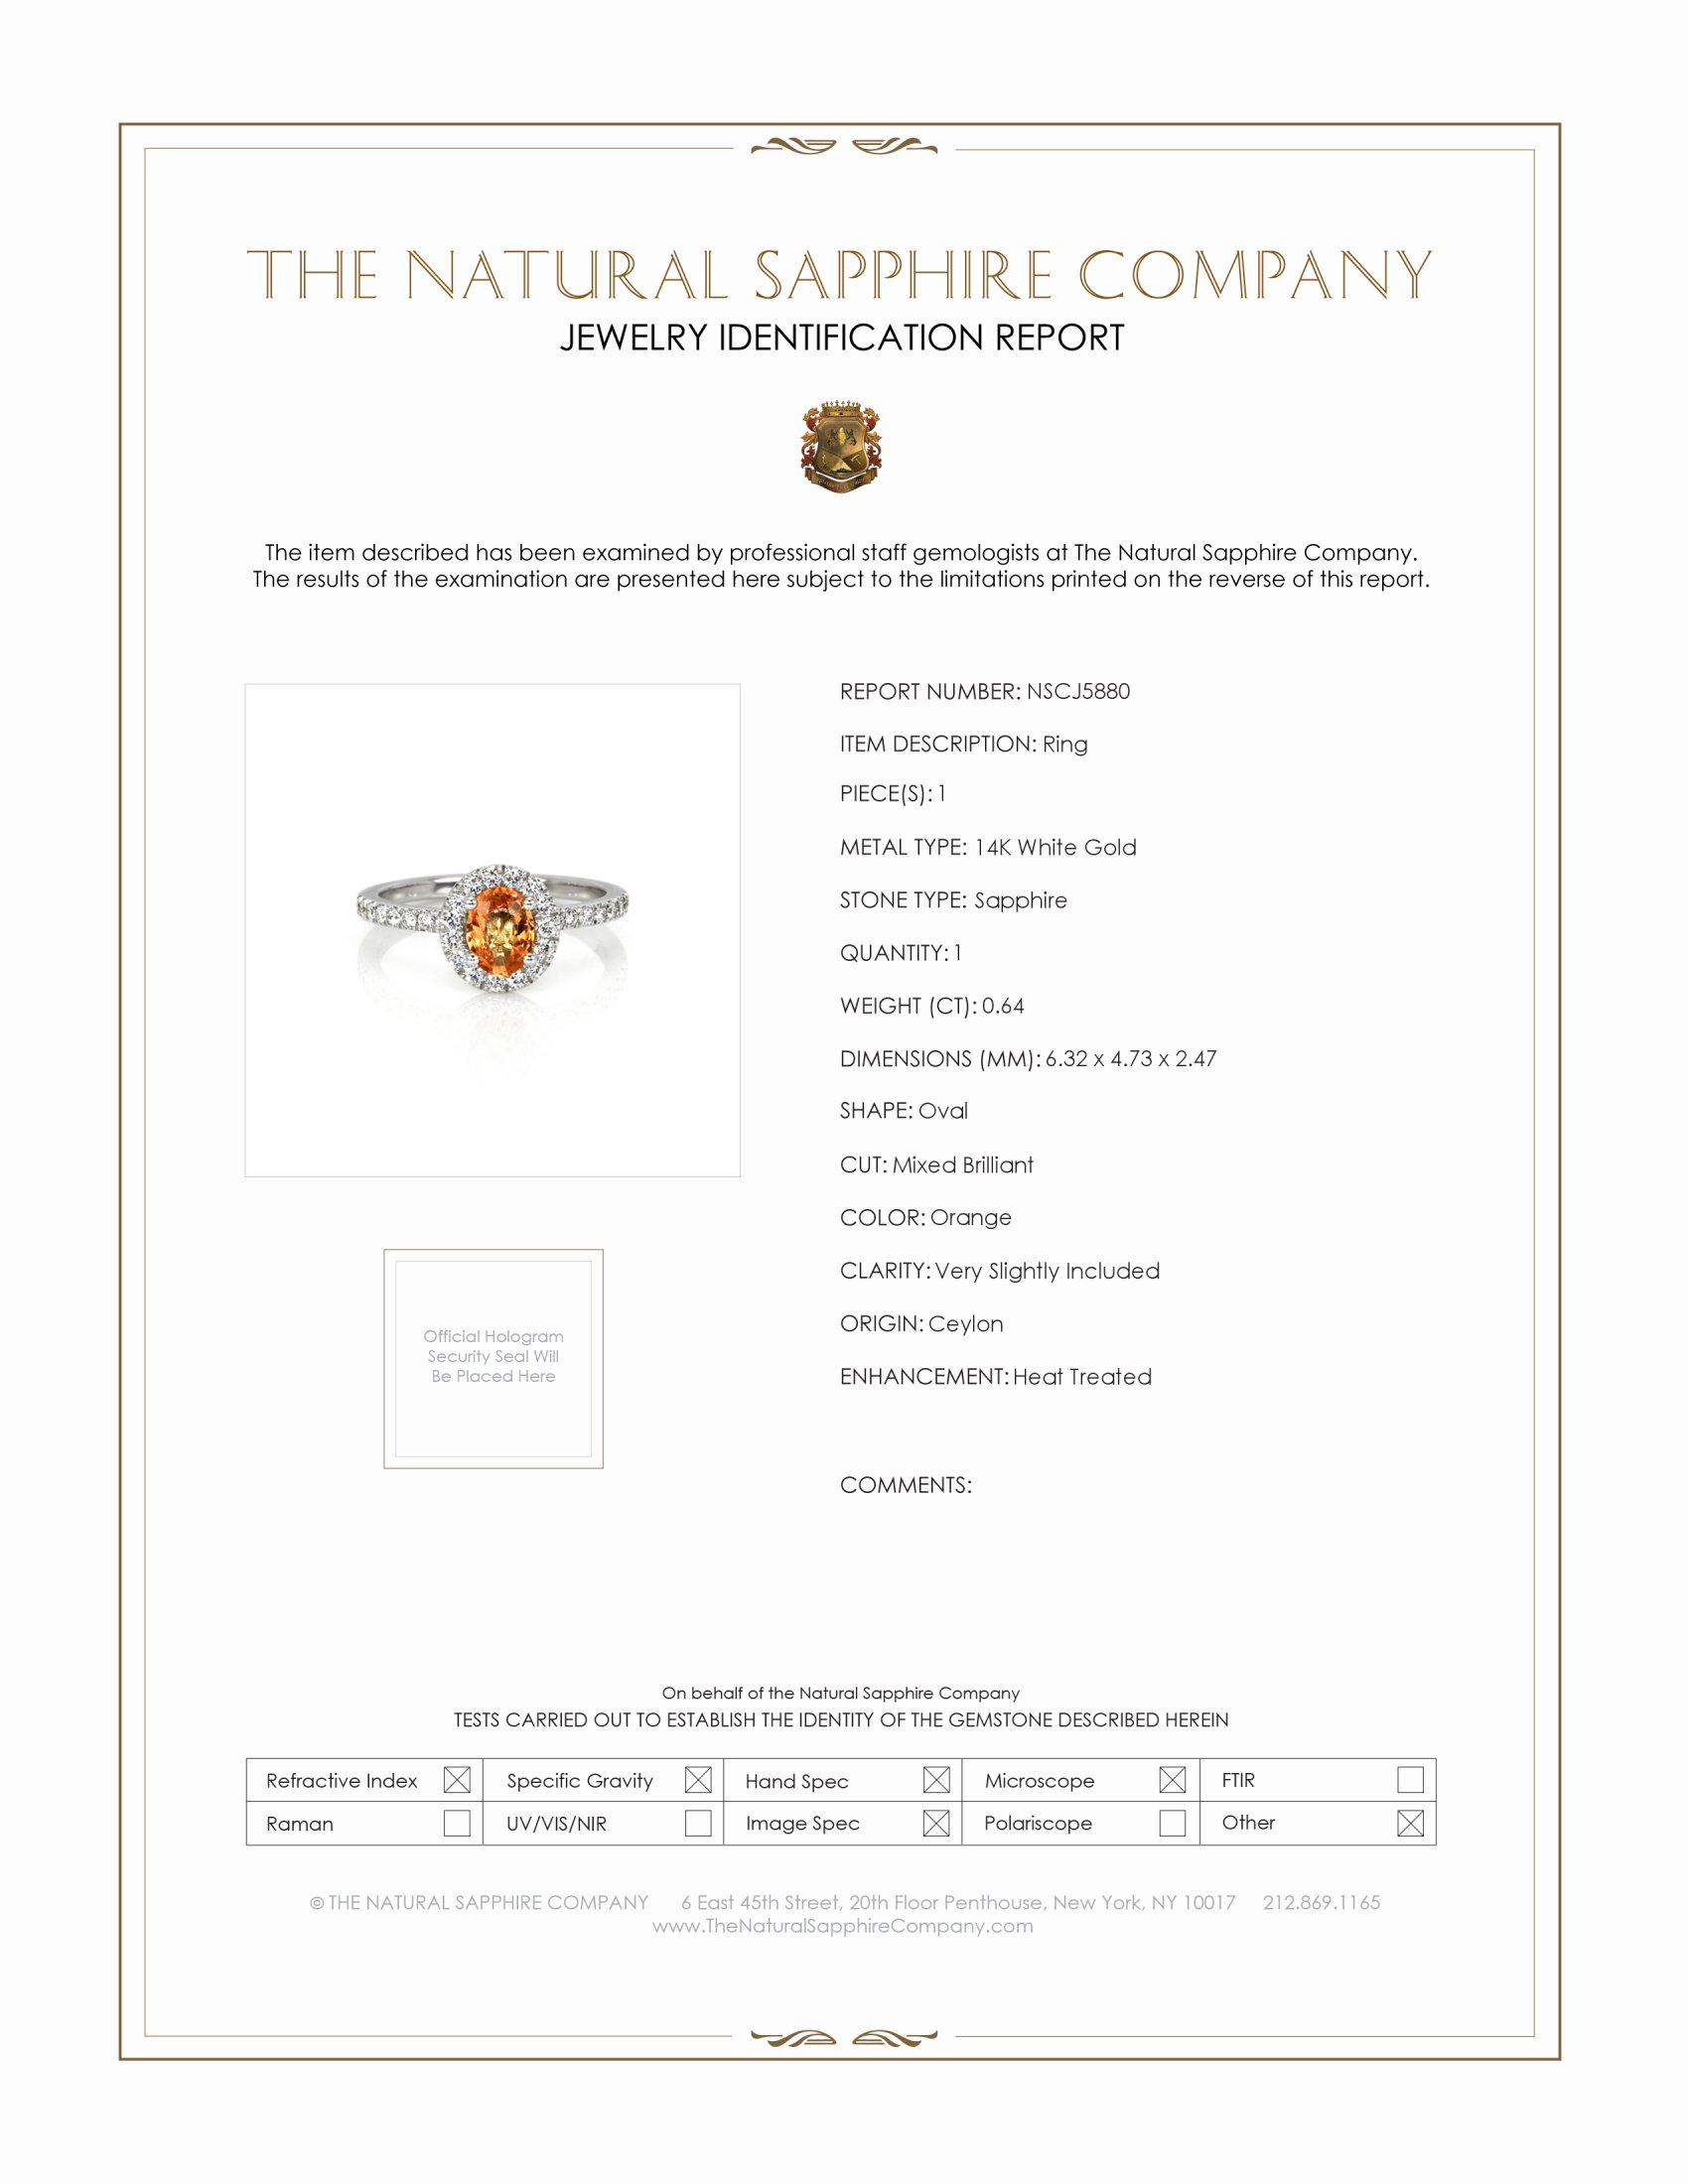 0.64ct Orange Sapphire Ring Certification